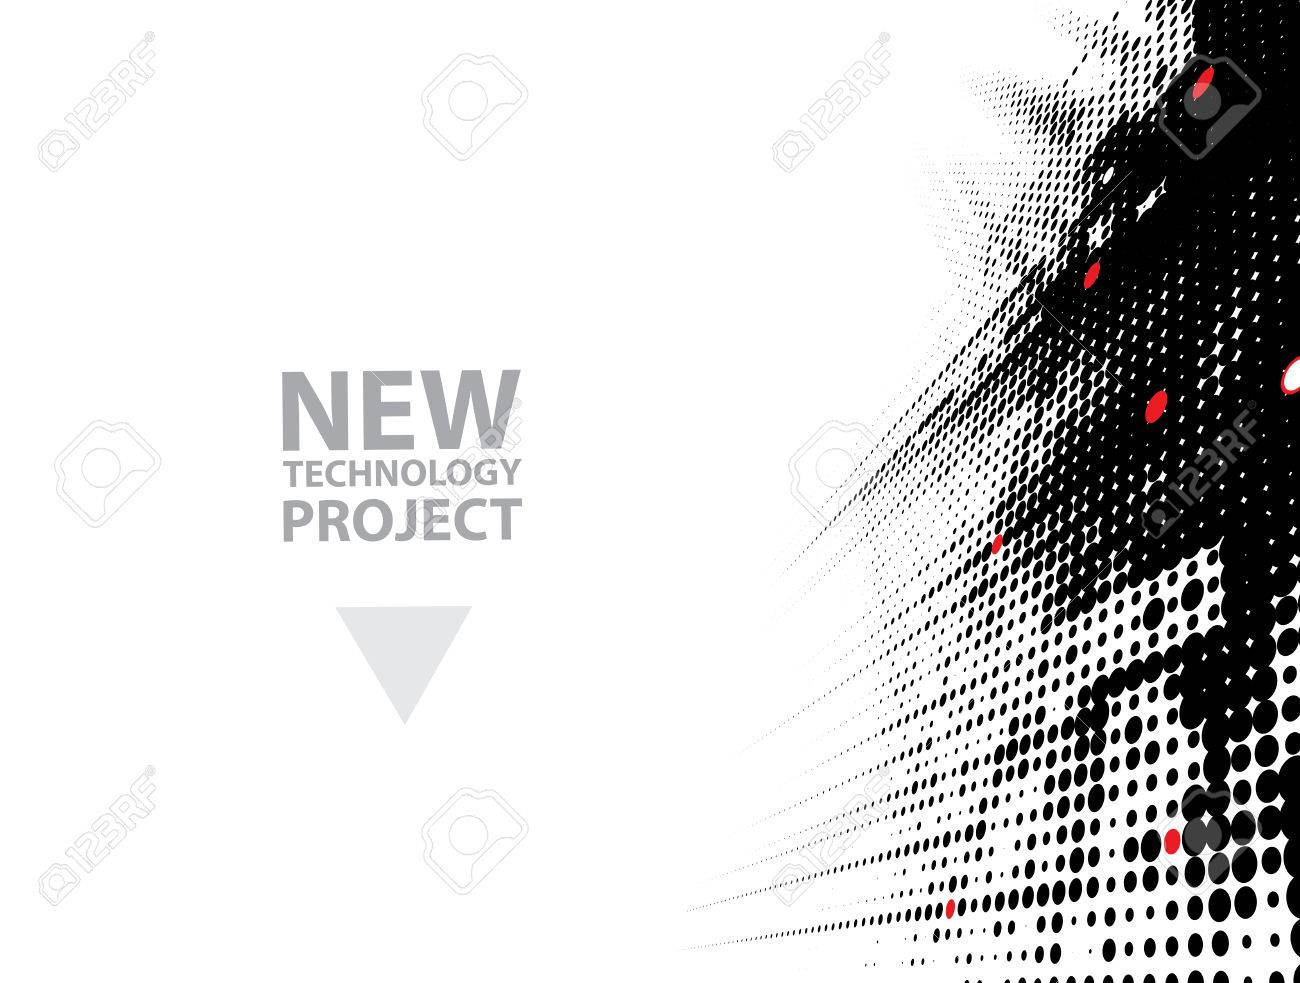 abstract futuristic fade computer technology business background - 64973241